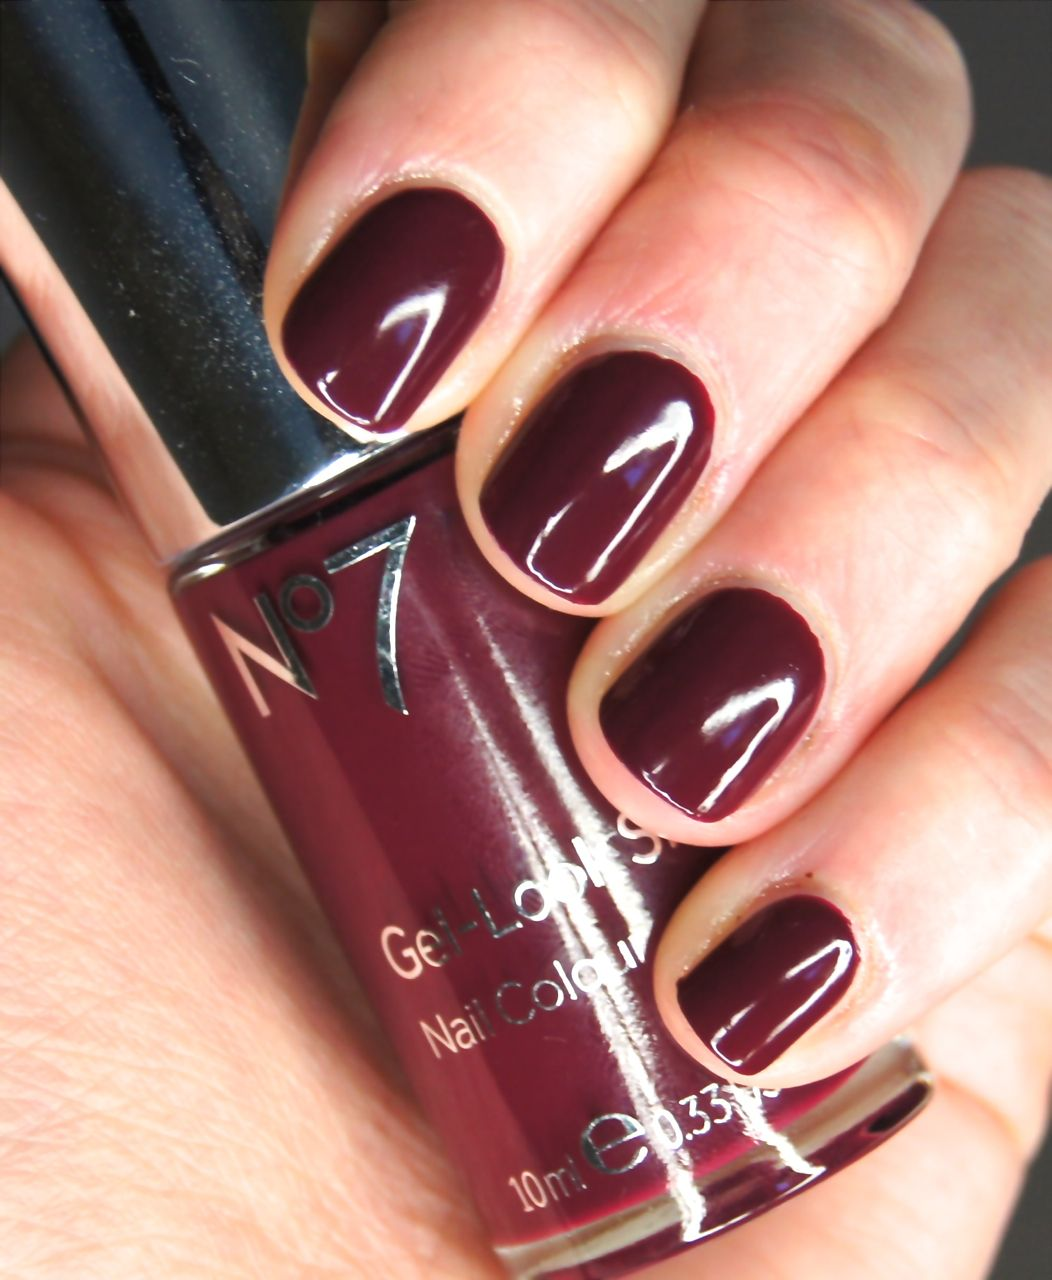 No7 Gel-Look Shine Nail Colour deep wine | Nails | Pinterest